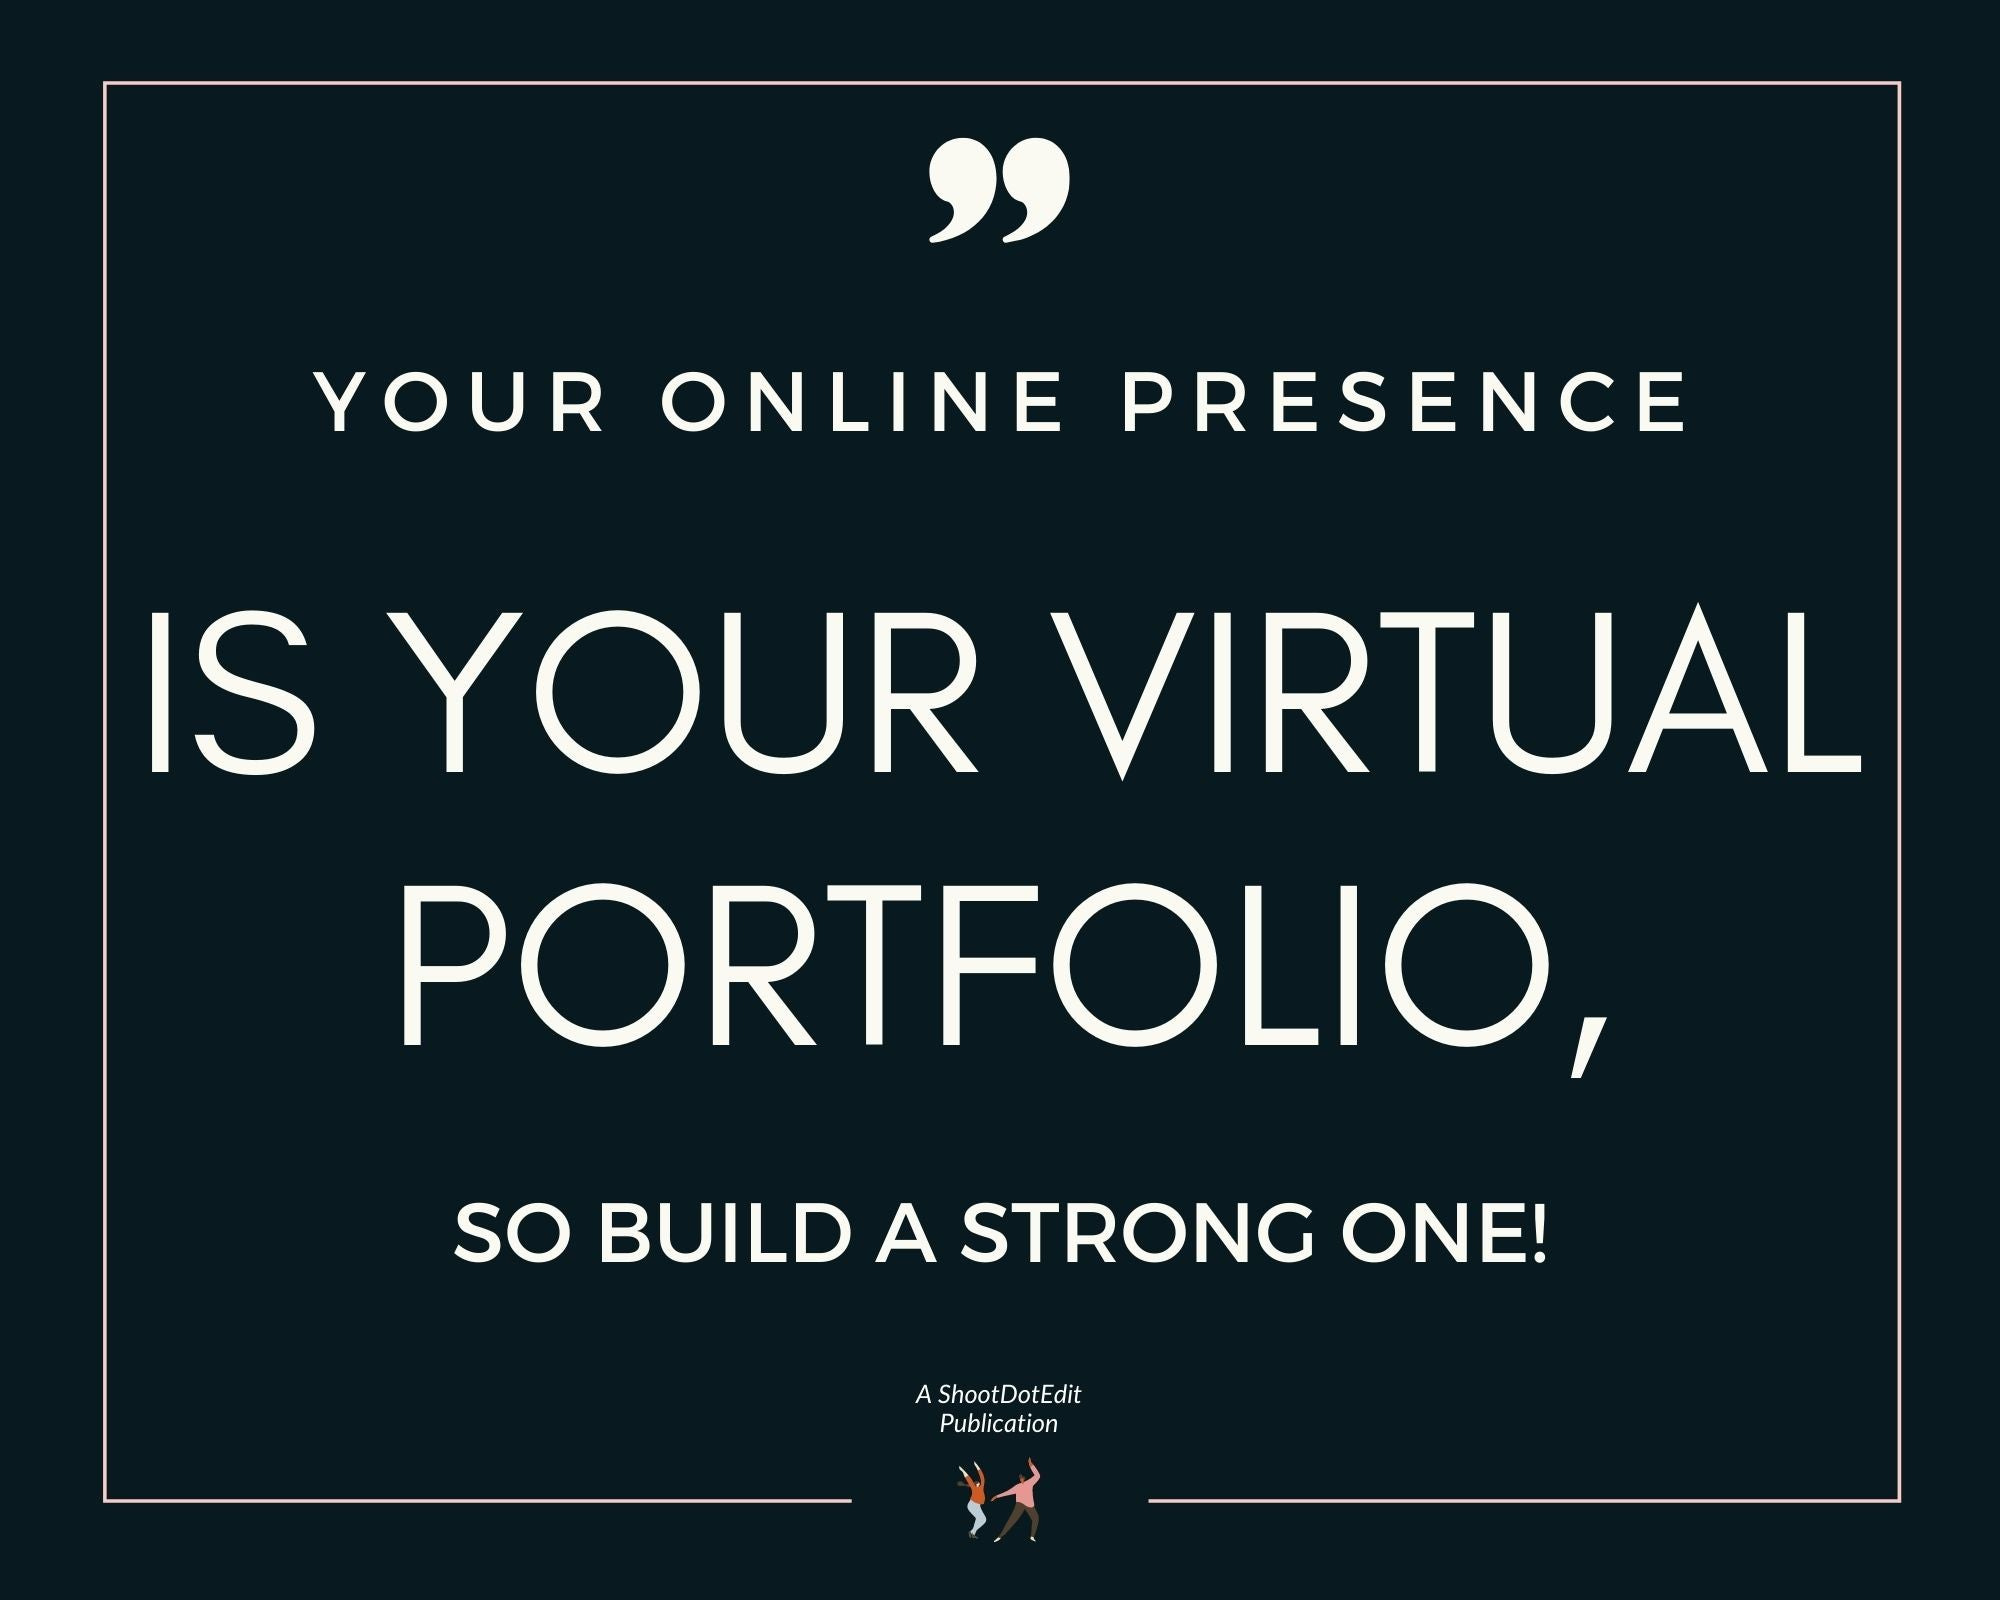 Infographic stating your online presence is your virtual portfolio so build a strong one